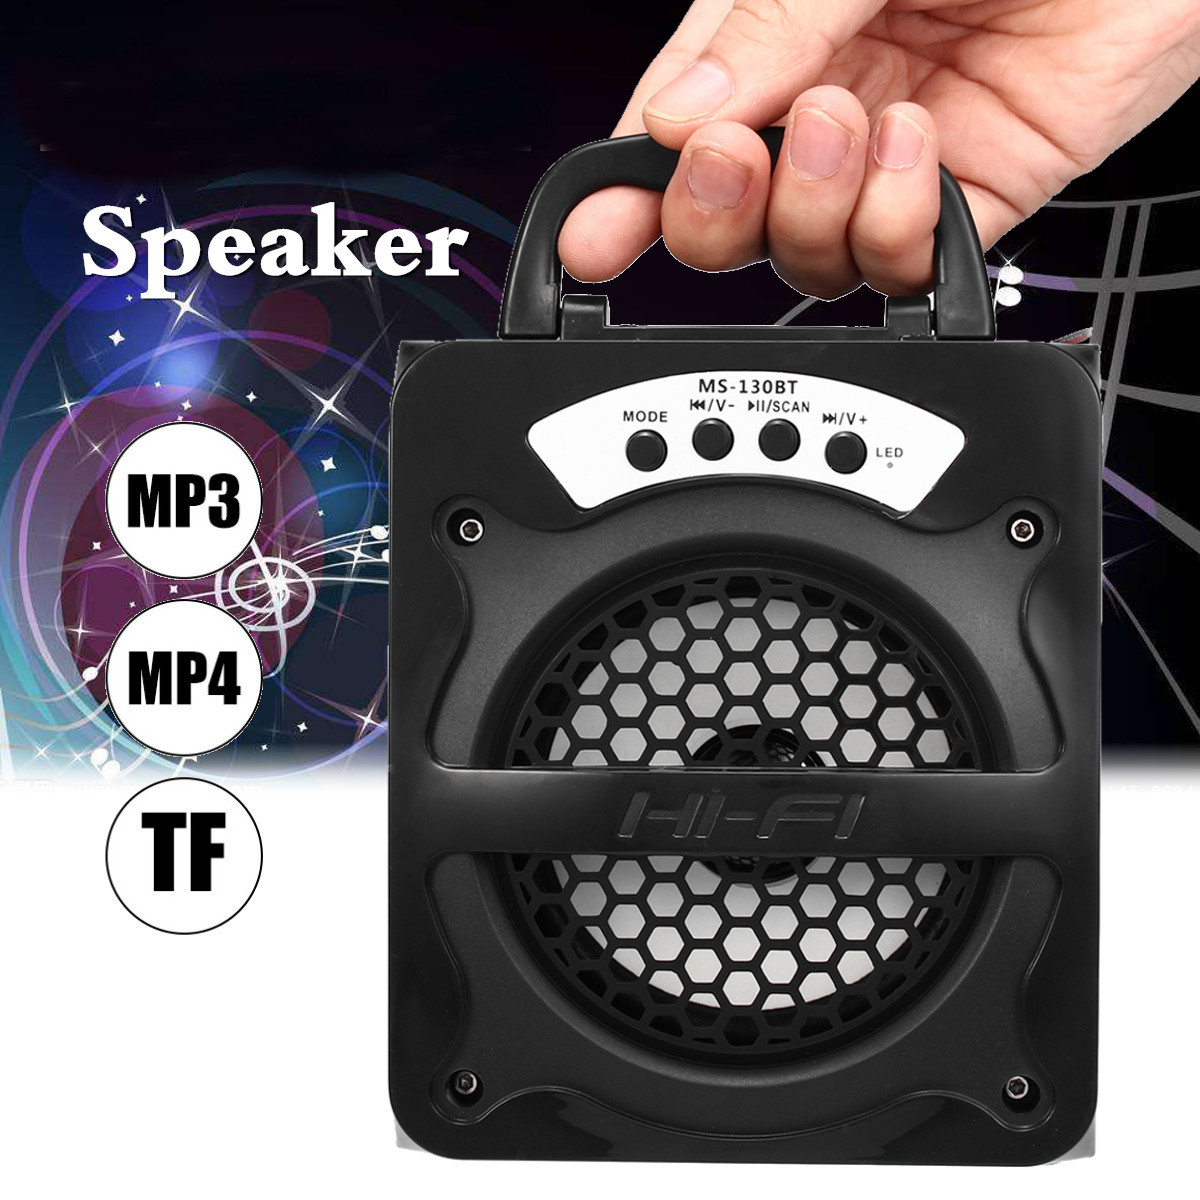 Super Bass Draagbare Bluetooth Speakers Subwoofer Draadloze Speaker Met Usb/tf/aux/fm Radio Party Bar Muziek Speler Outdoor